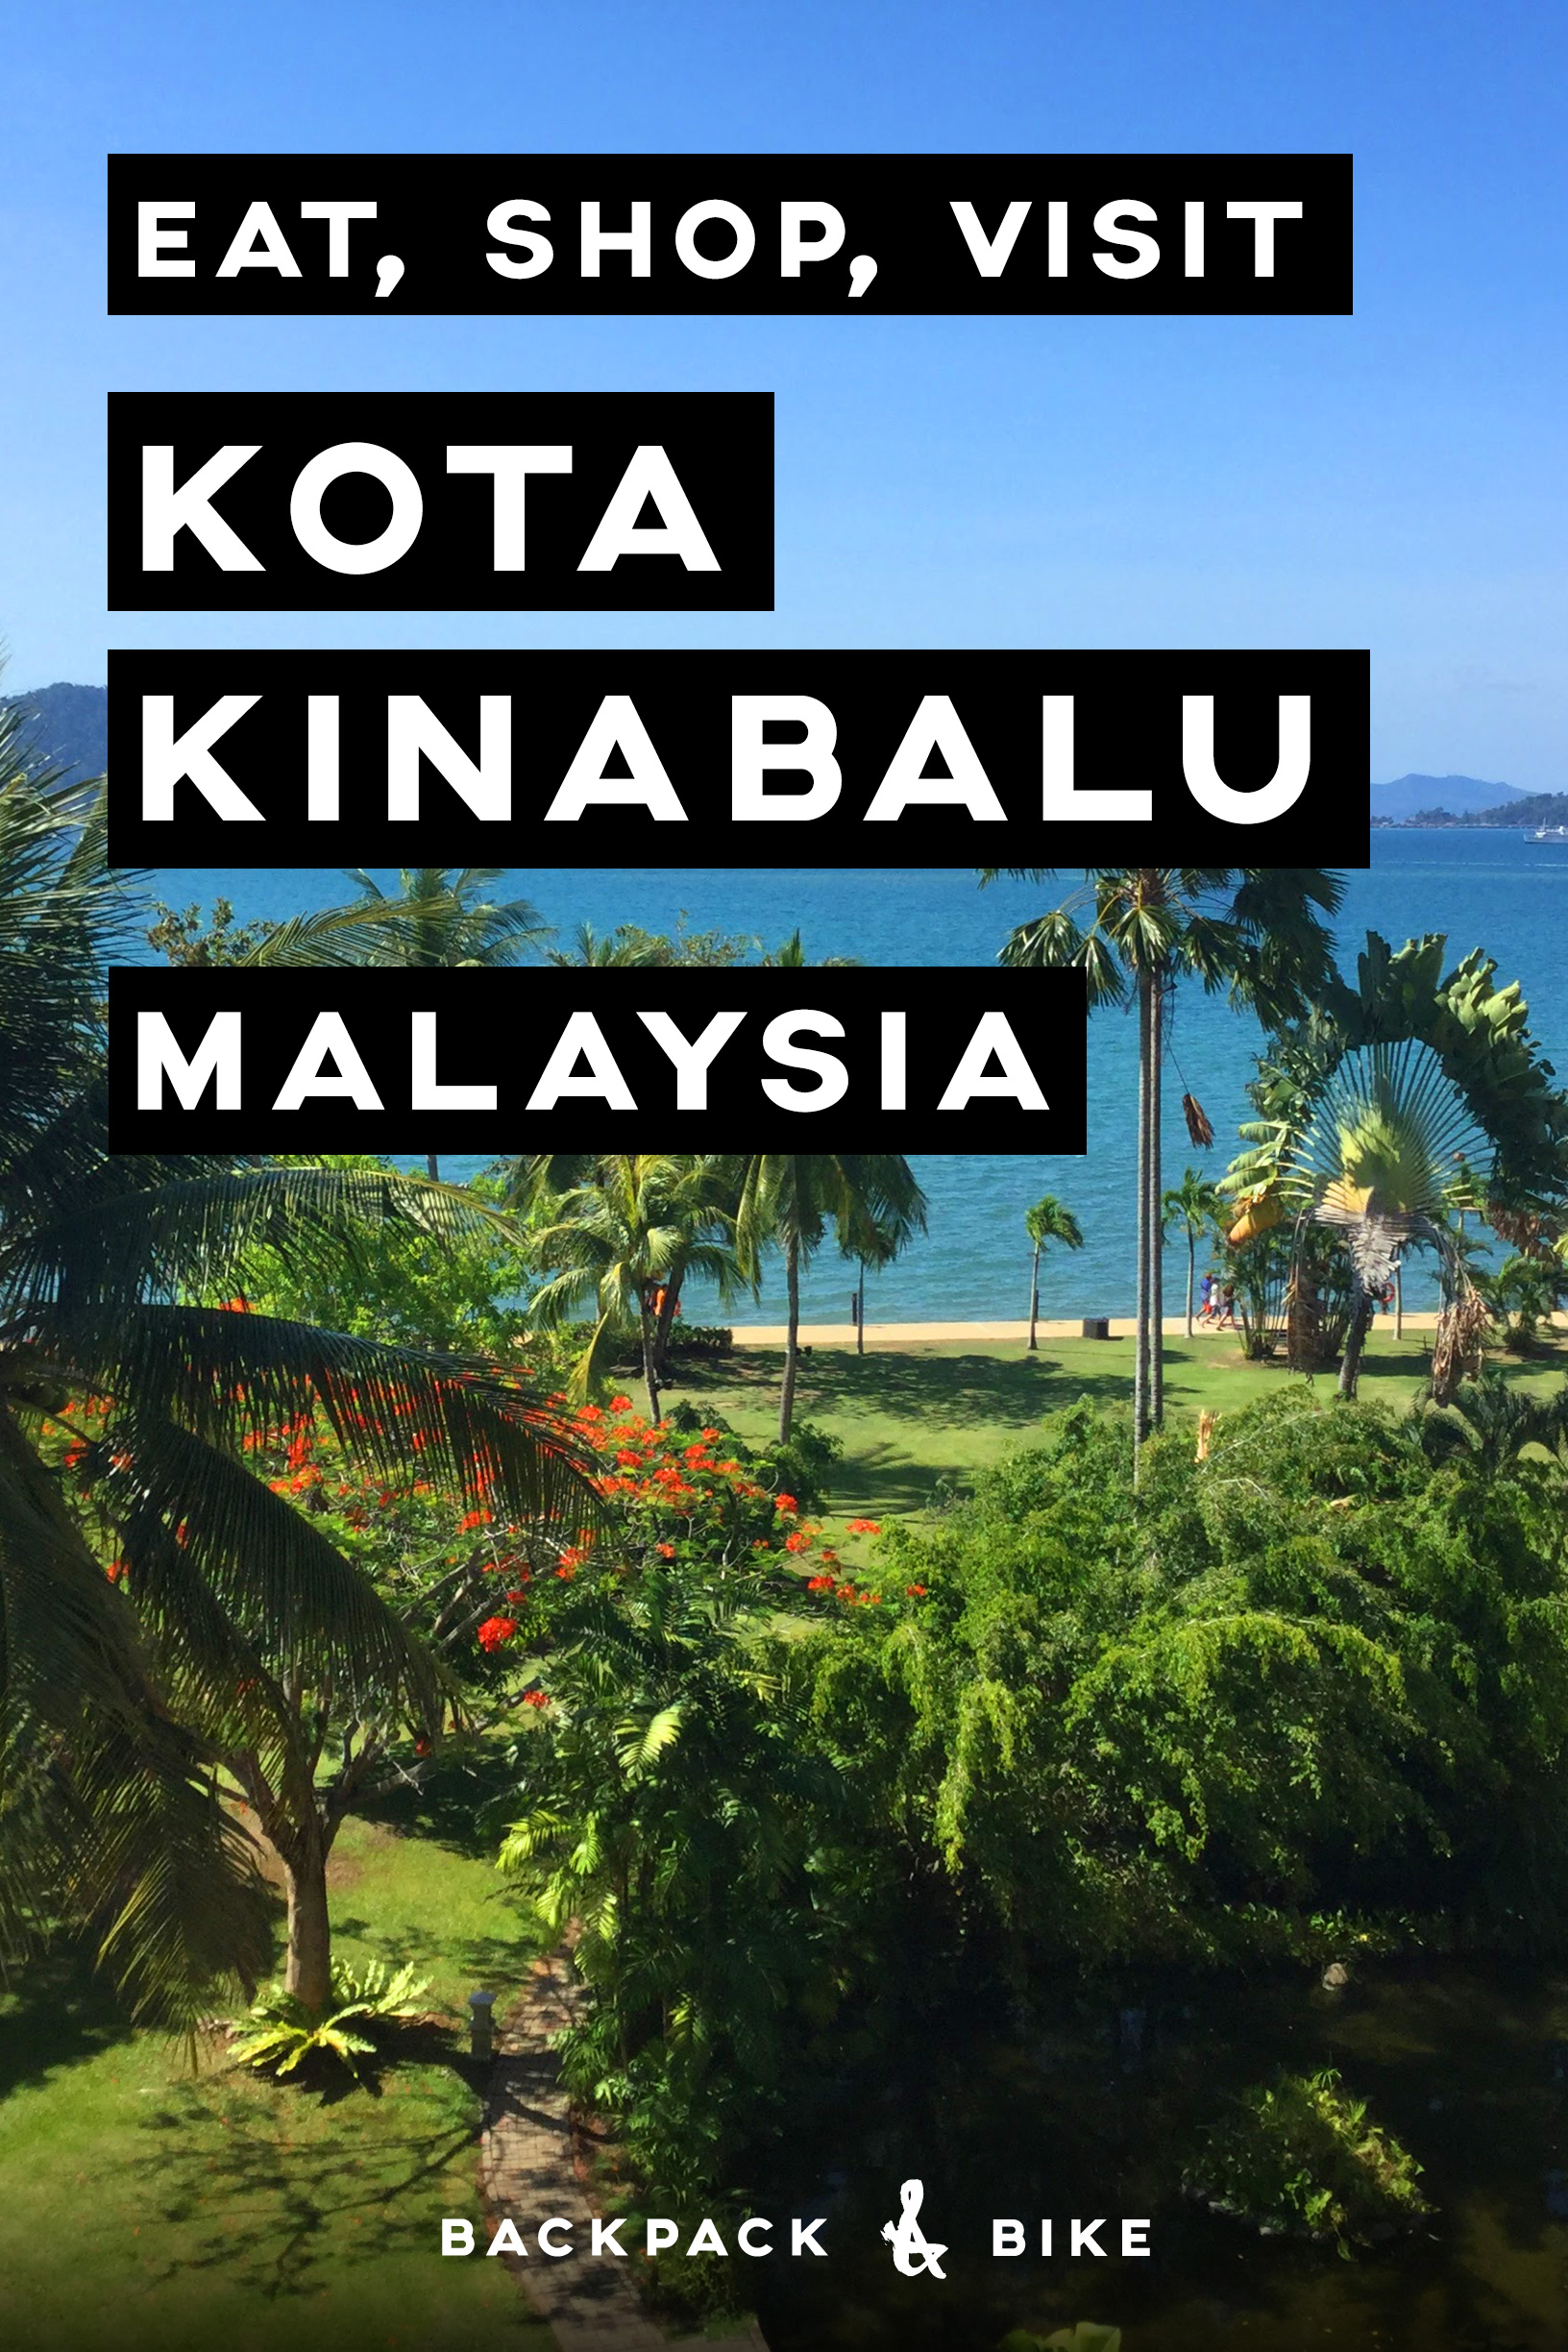 Kota Kinabalu Malaysia   Eat, Shop Visit   What is there even to do in KK? Lots! Mostly eating...